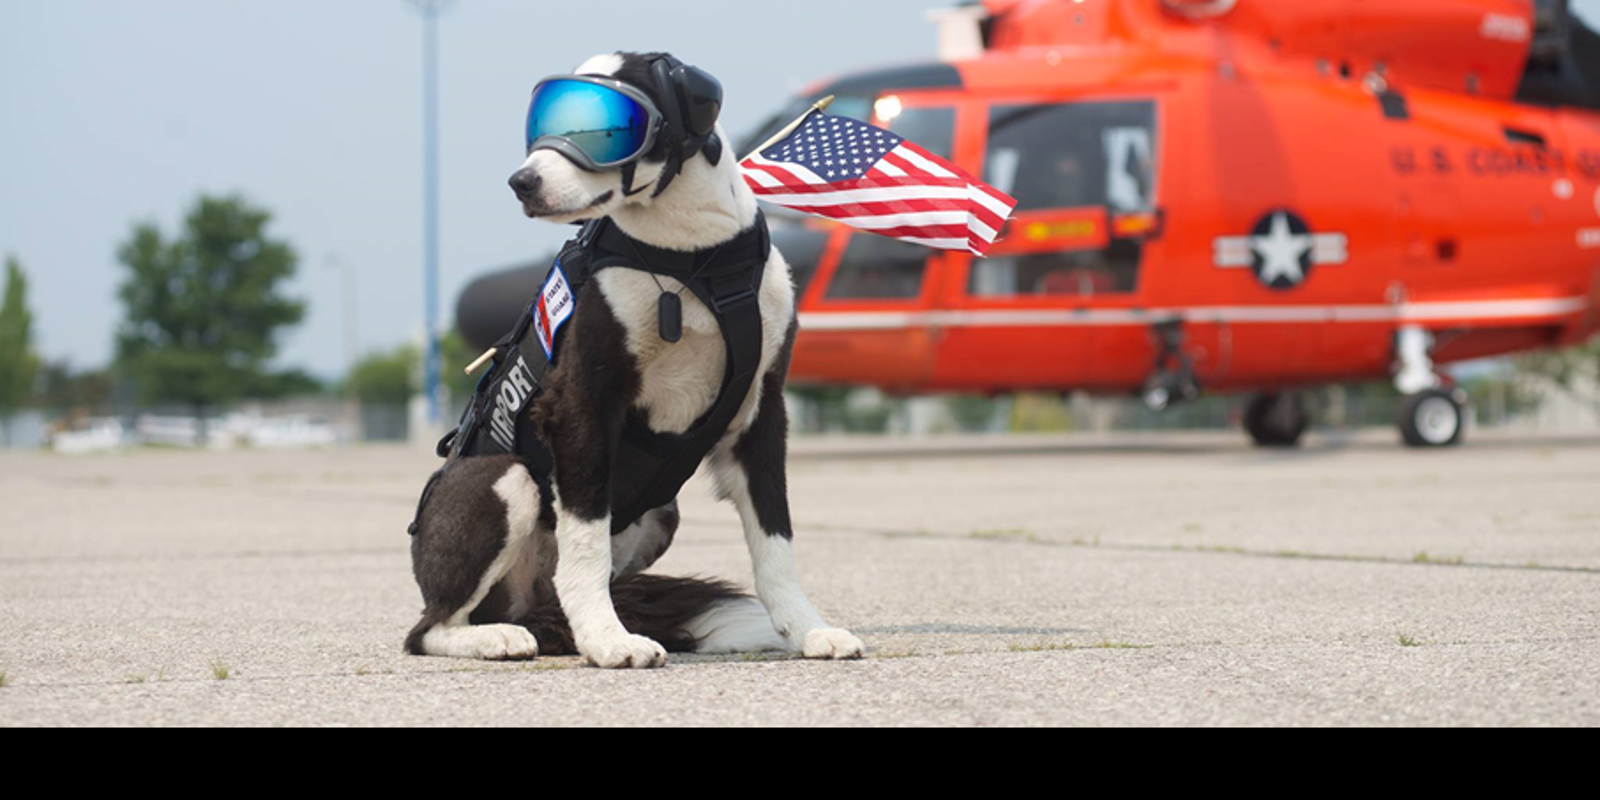 Famed Traverse City airport dog, Piper, dies of cancer